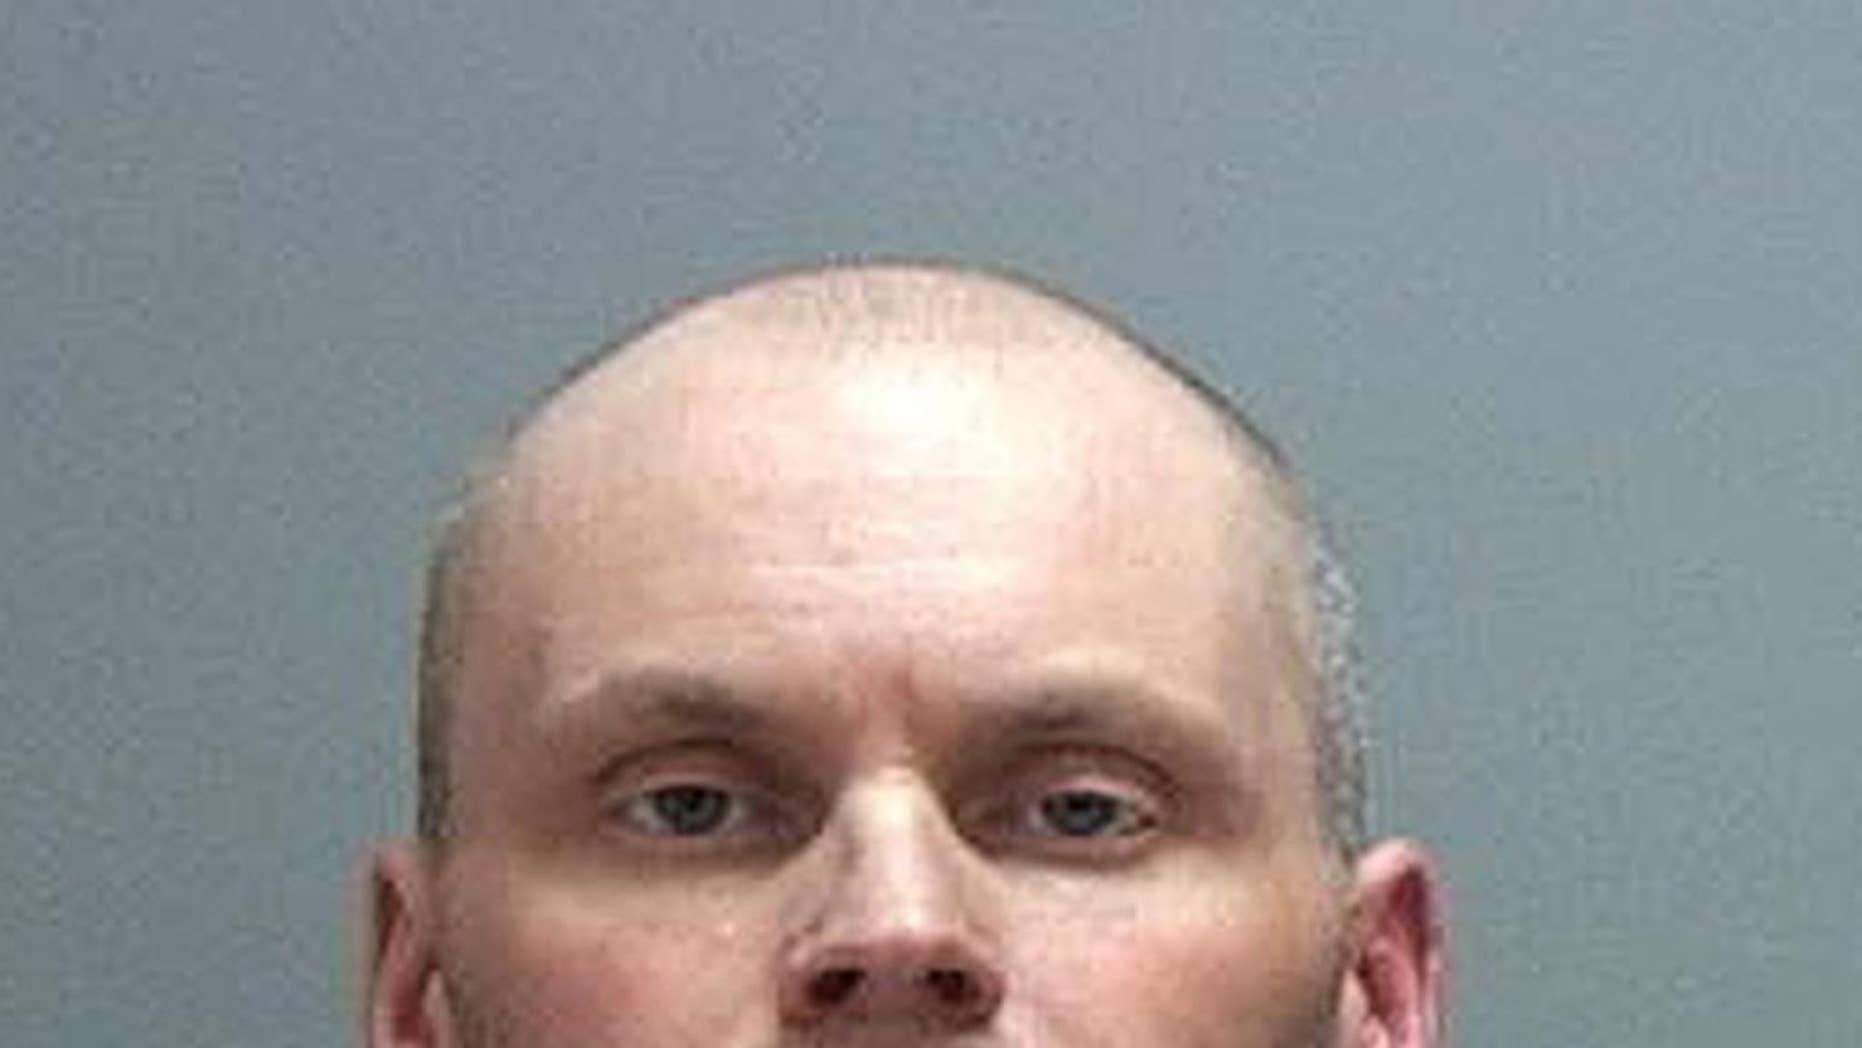 This Monday, April 27, 2015 booking photo provided by the Salt Lake County Sheriff shows Leo Greene, 39, of Salt Lake City. Greene has been arrested after crashing through a fence and sprinting from police onto a runway at the Salt Lake City airport early Monday, April 27, 2015. The 8-minute chase started on a public road near Salt Lake City International when an airport police officer tried to stop a car with its bumper dragging. The car took off, crashing through the fence lines and onto the tarmac area. The car then crashed into another fence and Greene jumped out and ran before being arrested. (Salt Lake County Sheriff via AP)